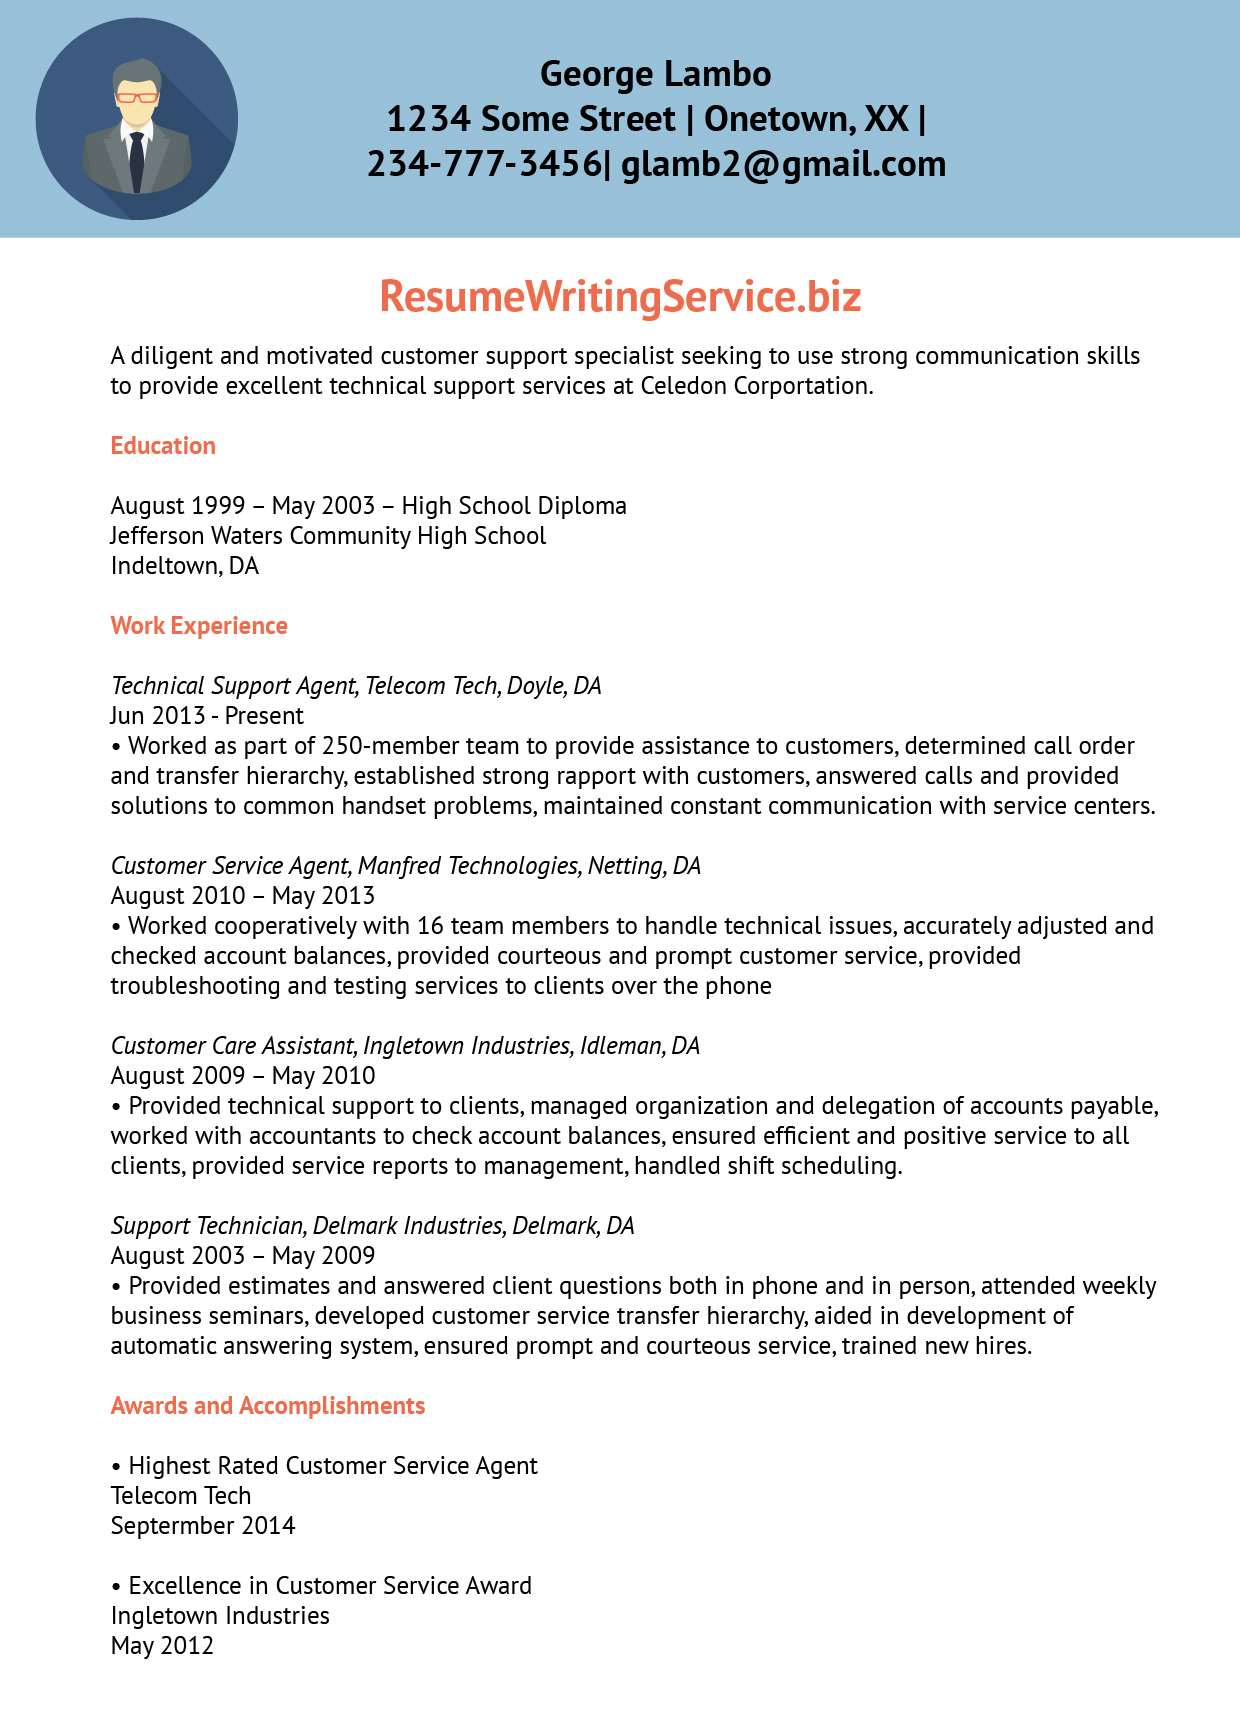 Best resume writing services 2014 reports